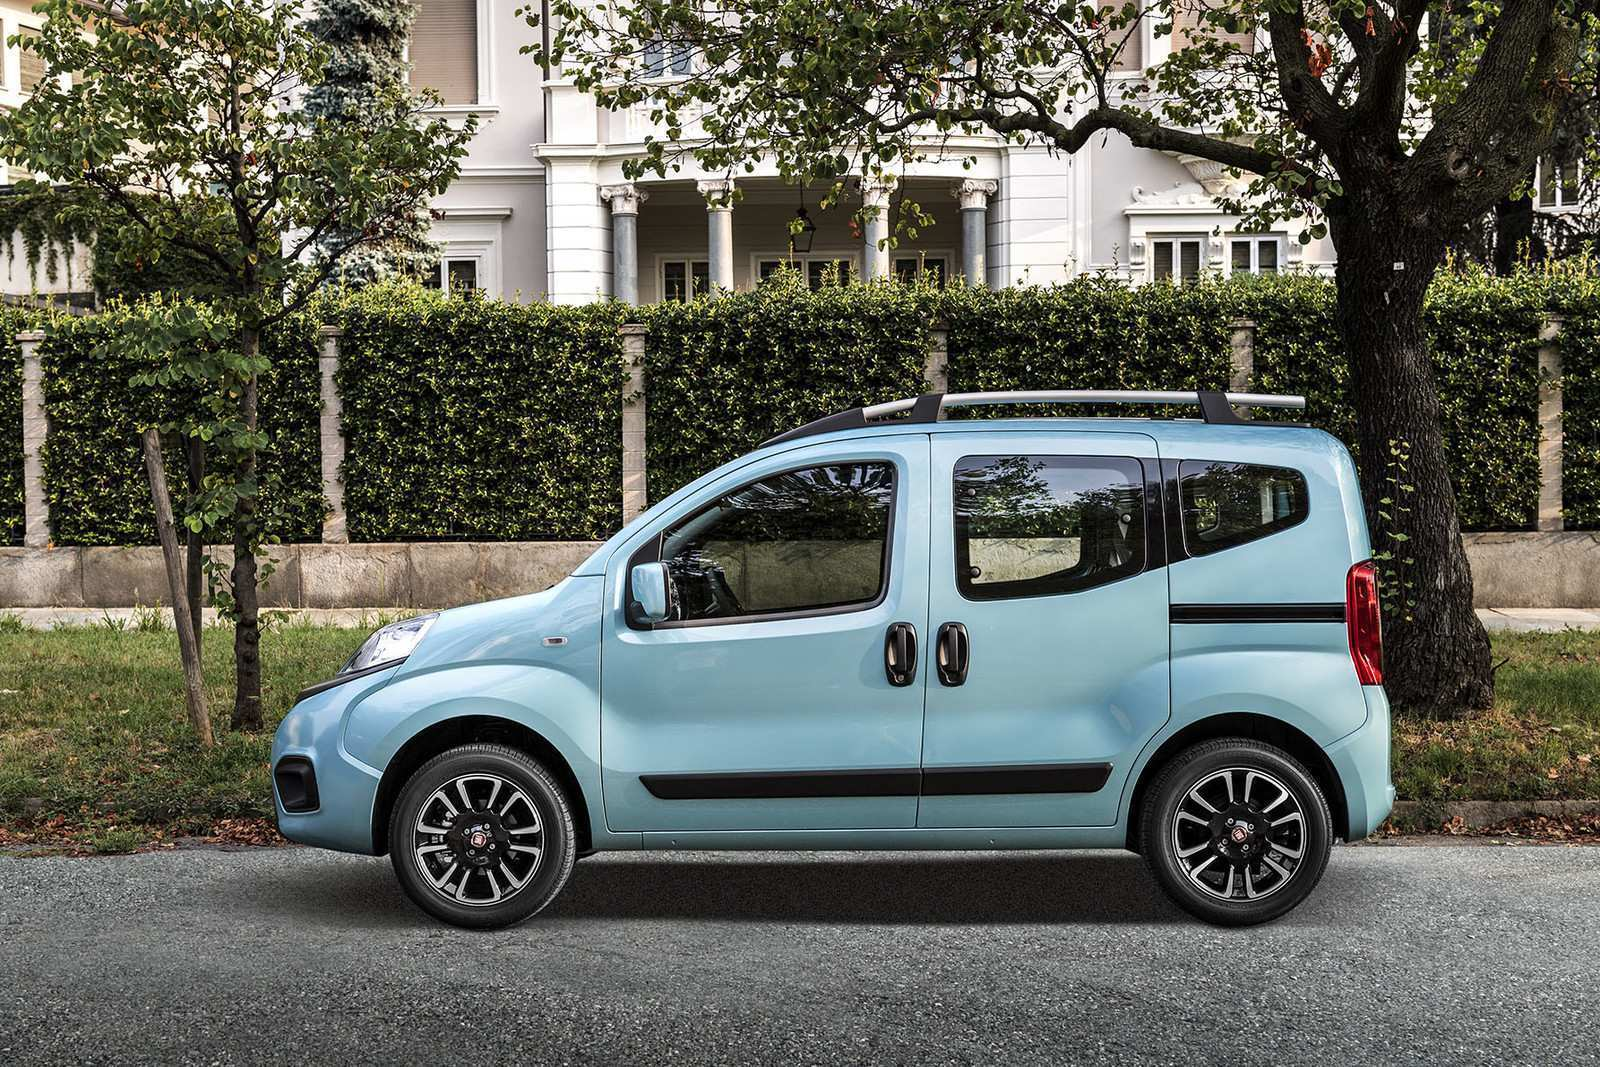 99 All New Fiat Qubo 2020 Engine